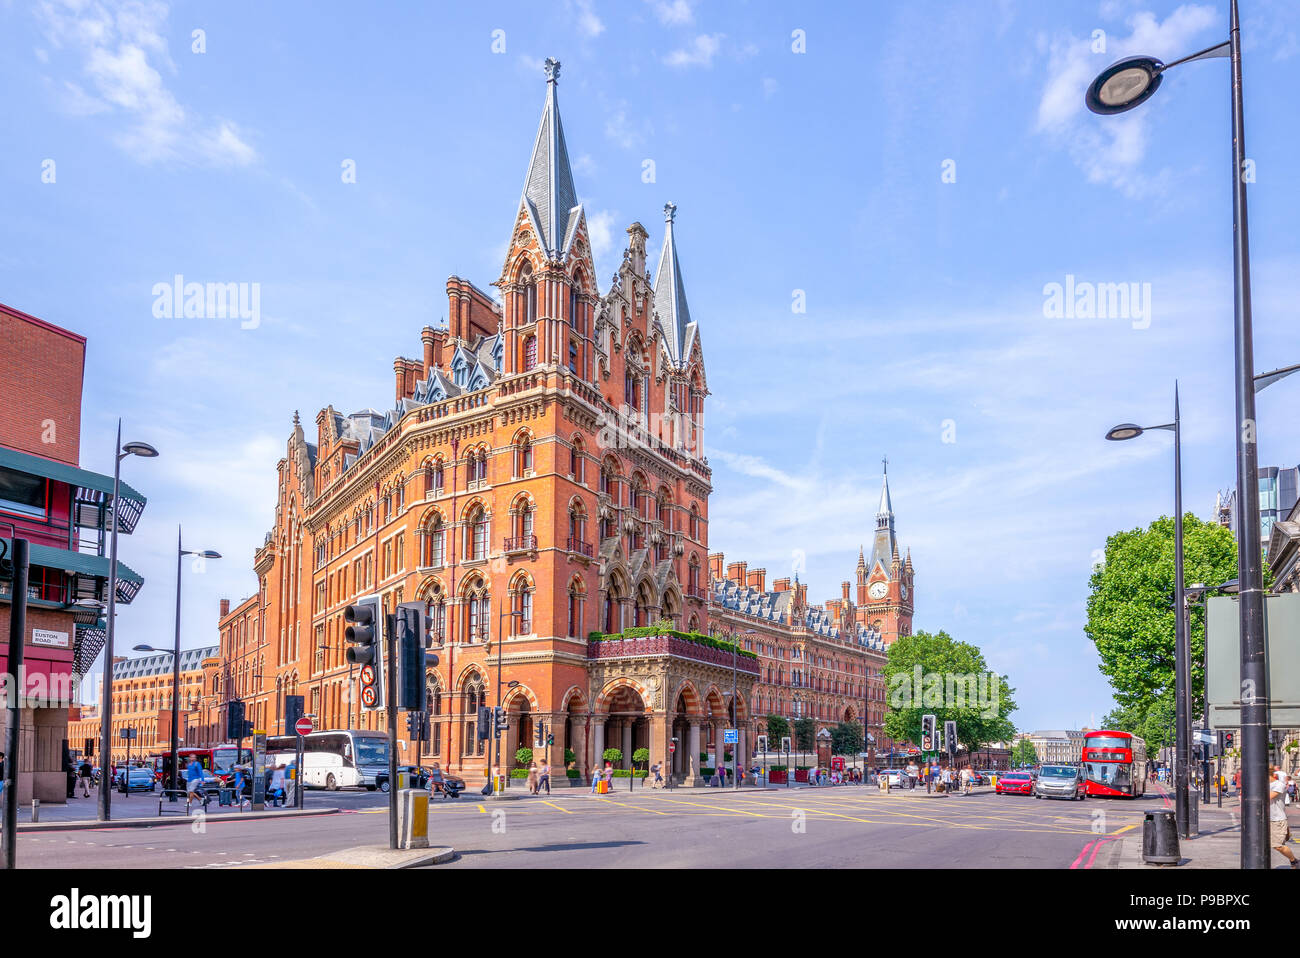 St. Pancras Renaissance hotel in London - Stock Image